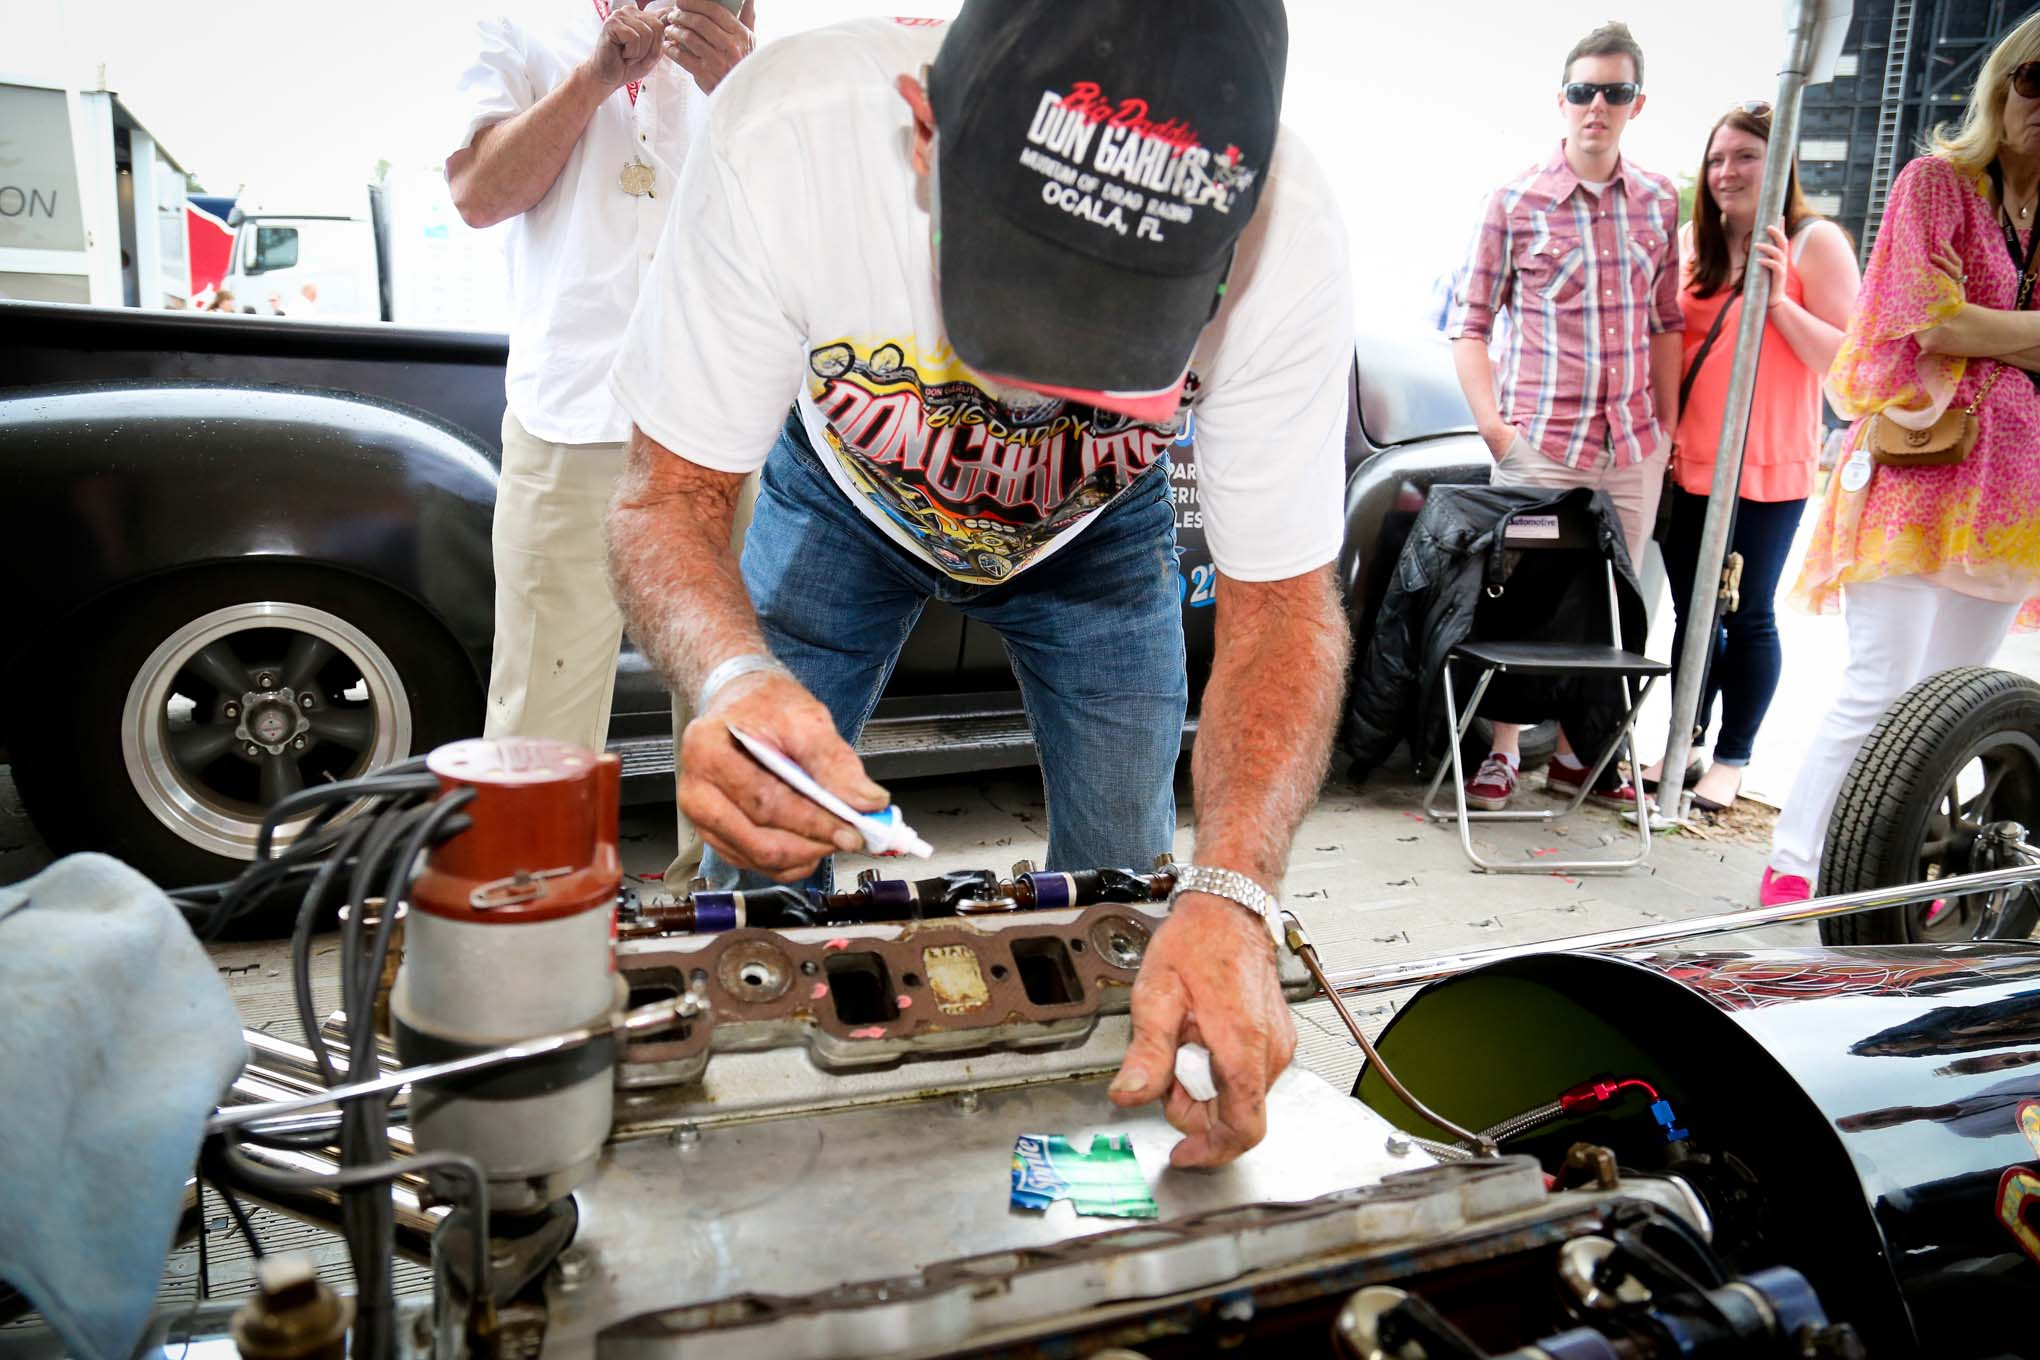 Rather than call it done, Garlits closed off the damaged cylinder with soda can aluminum and denture glue, then went back out and smoked the tires.